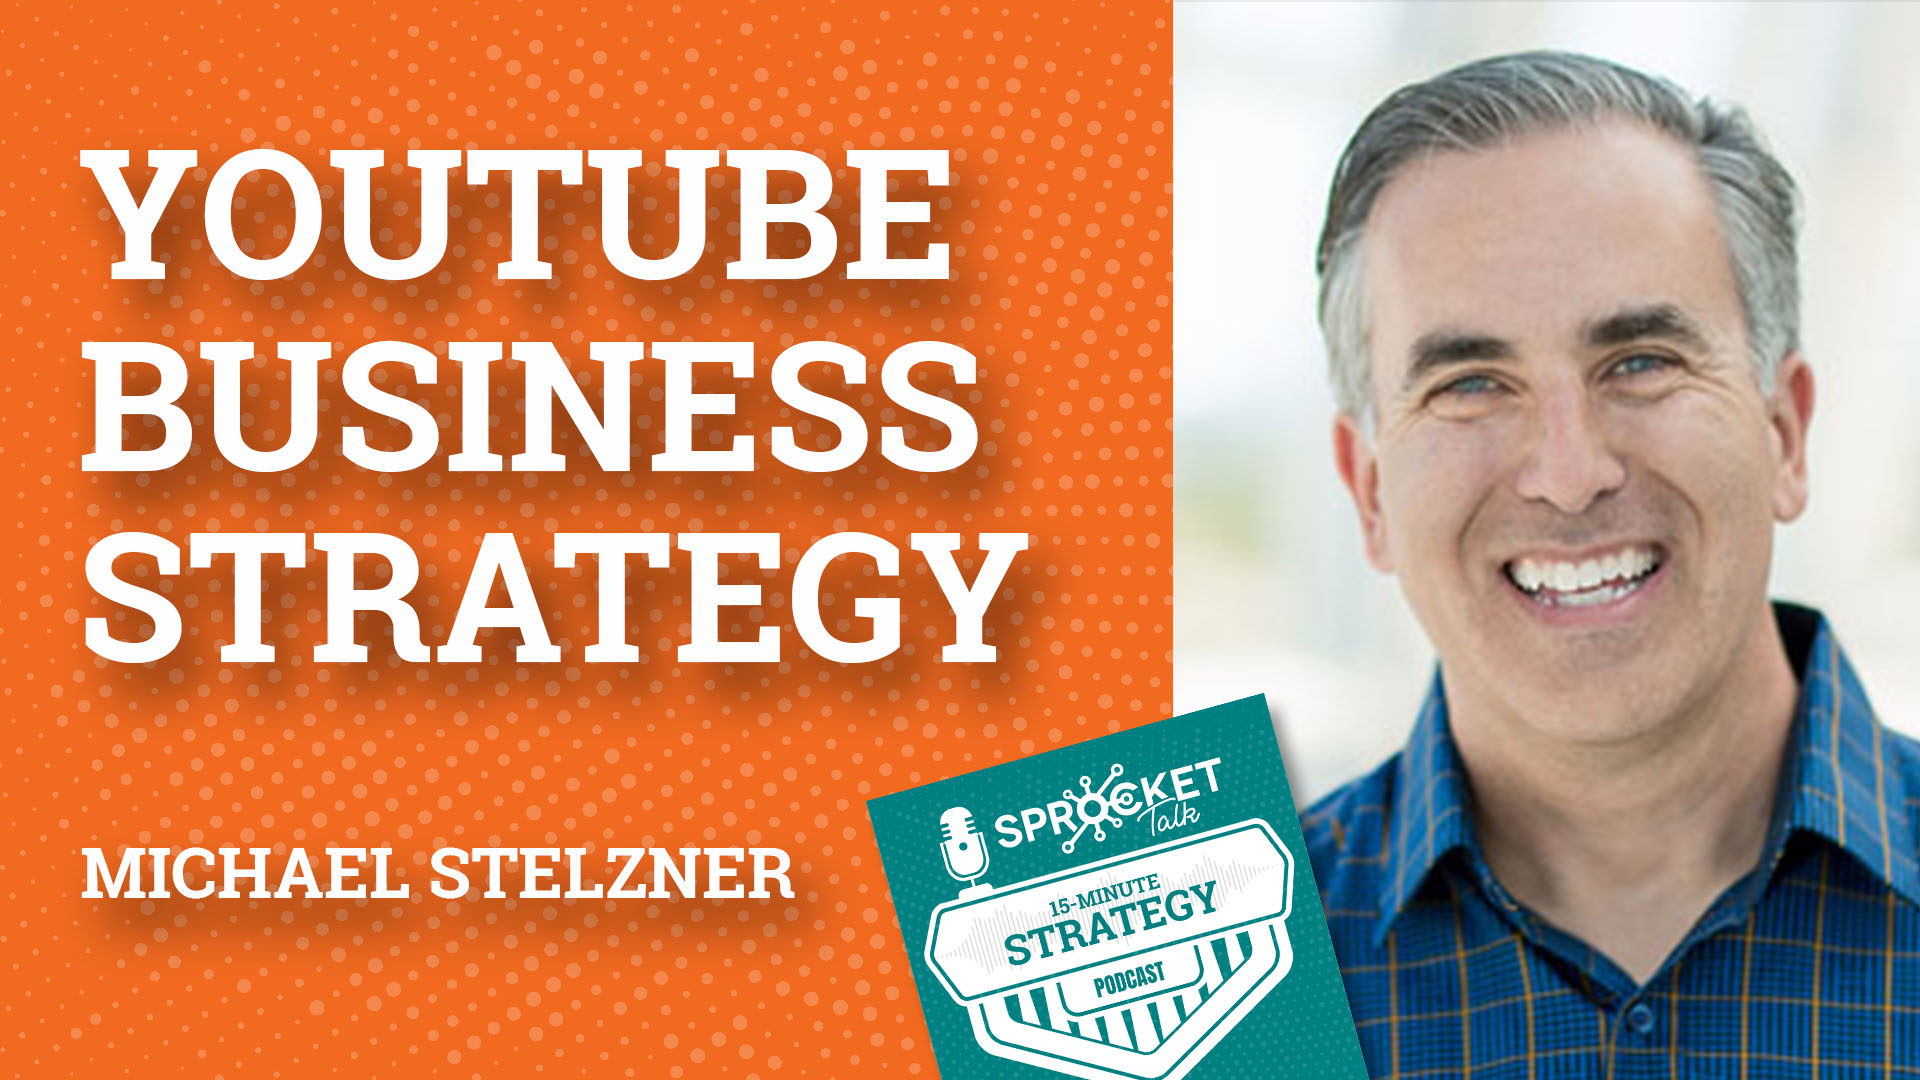 Michael Stelzner on YouTube as a Business Strategy | 15-Minute Strategy Podcast